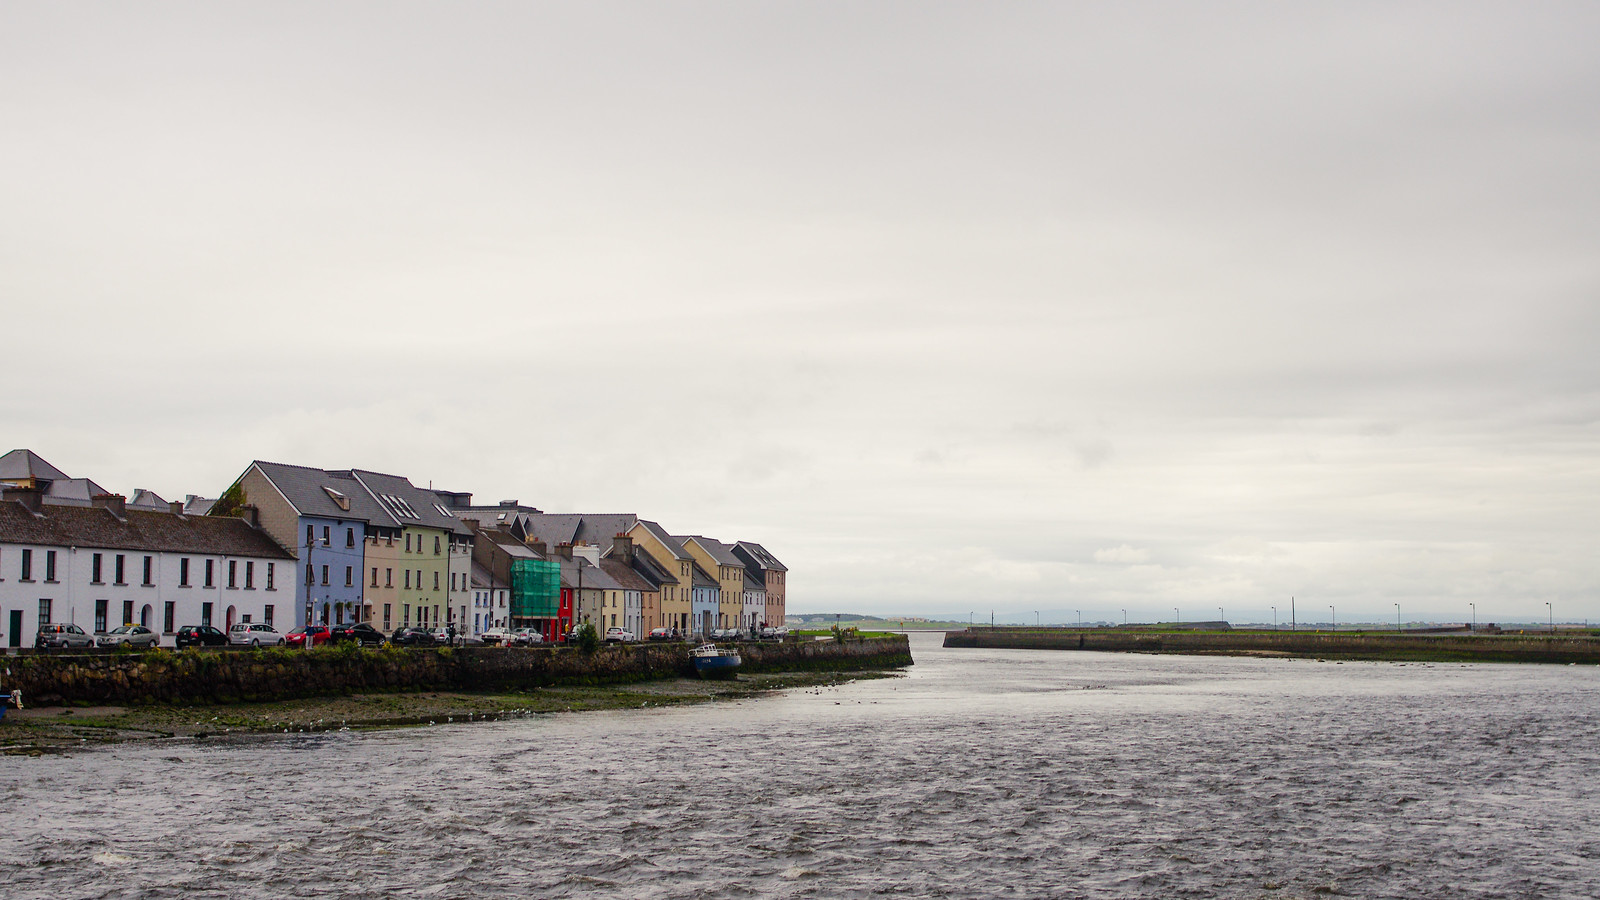 Galway - The corrib